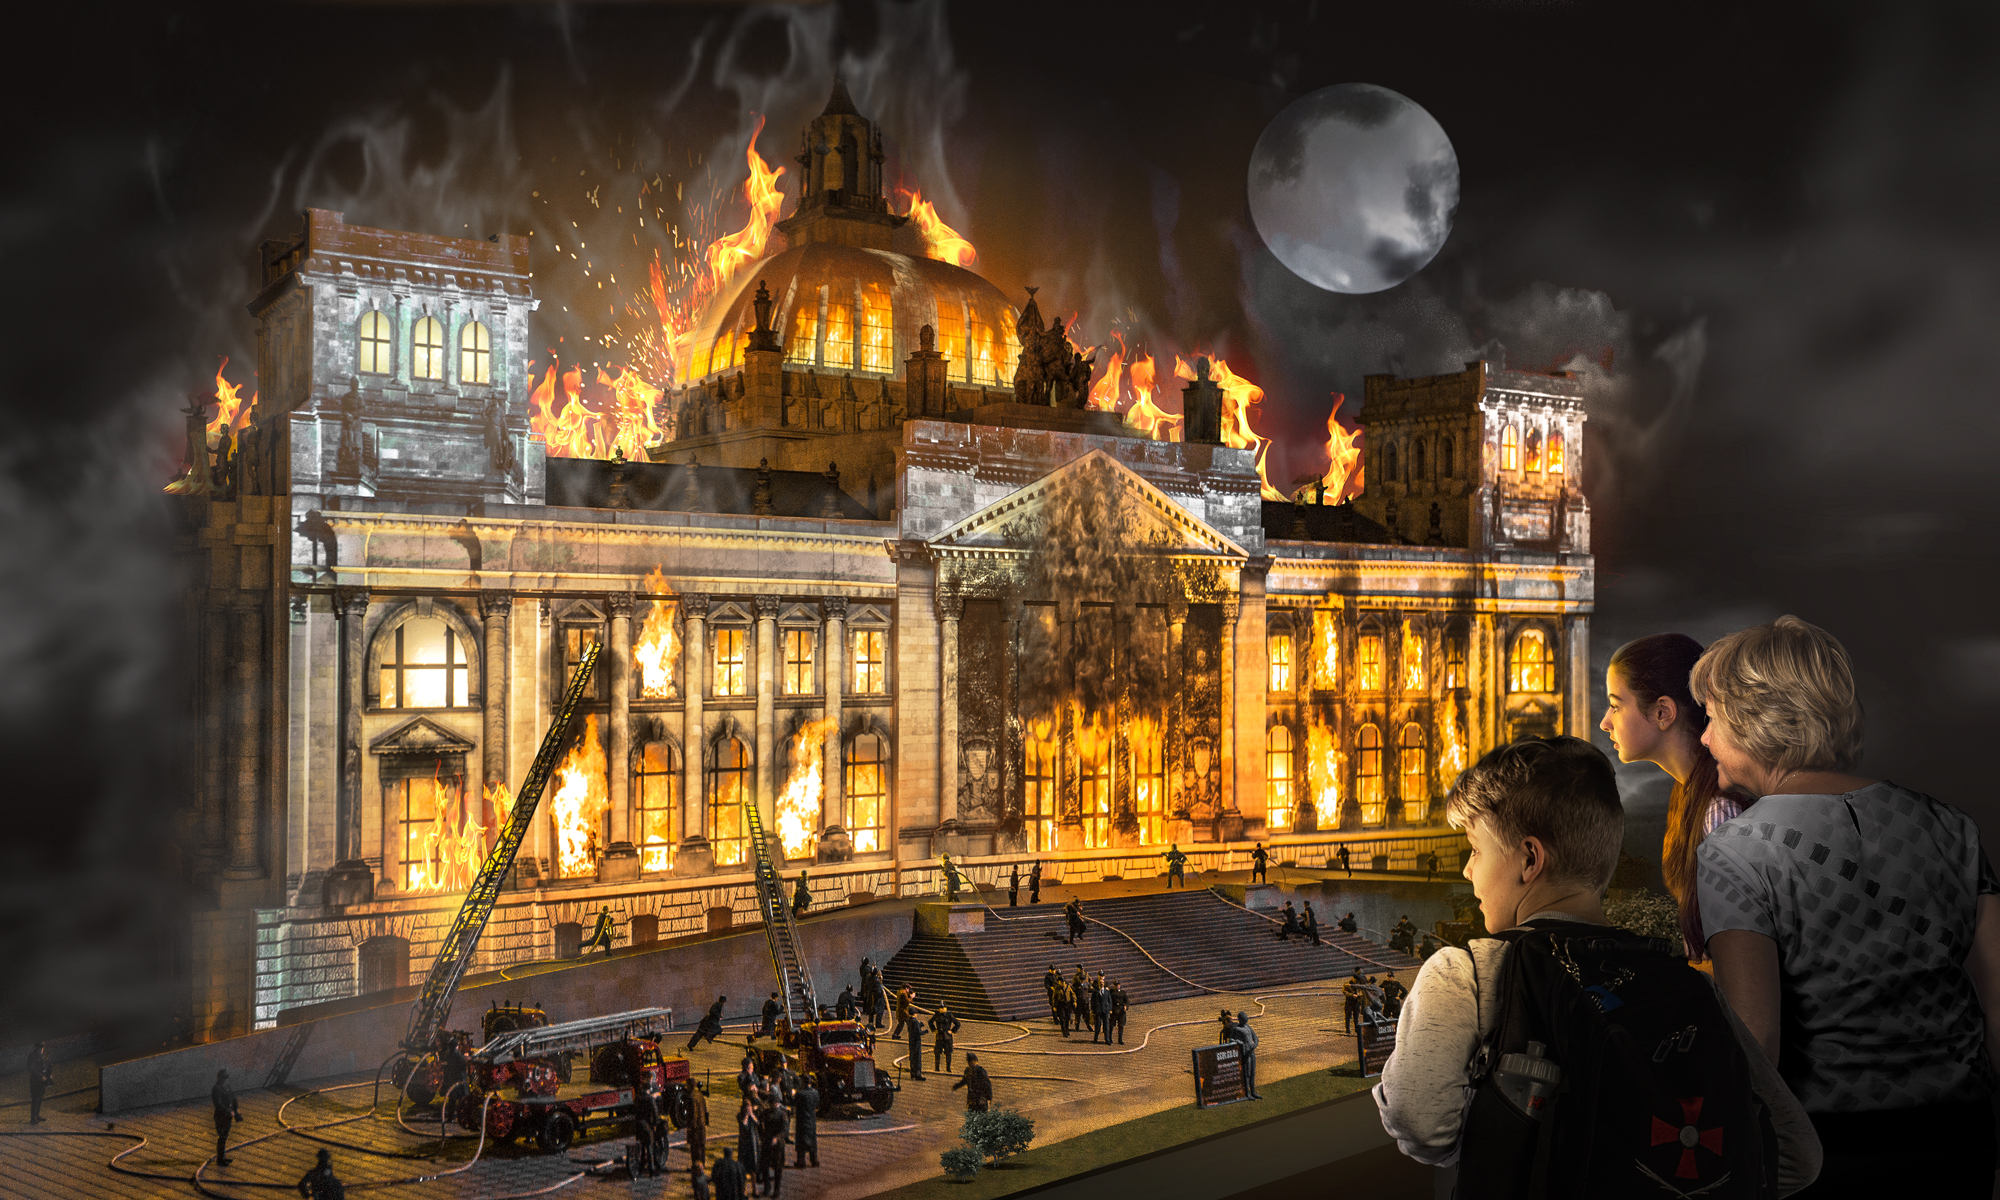 The Reichstag is in flames - visitors to Little BIG City can watch the extinguishing work